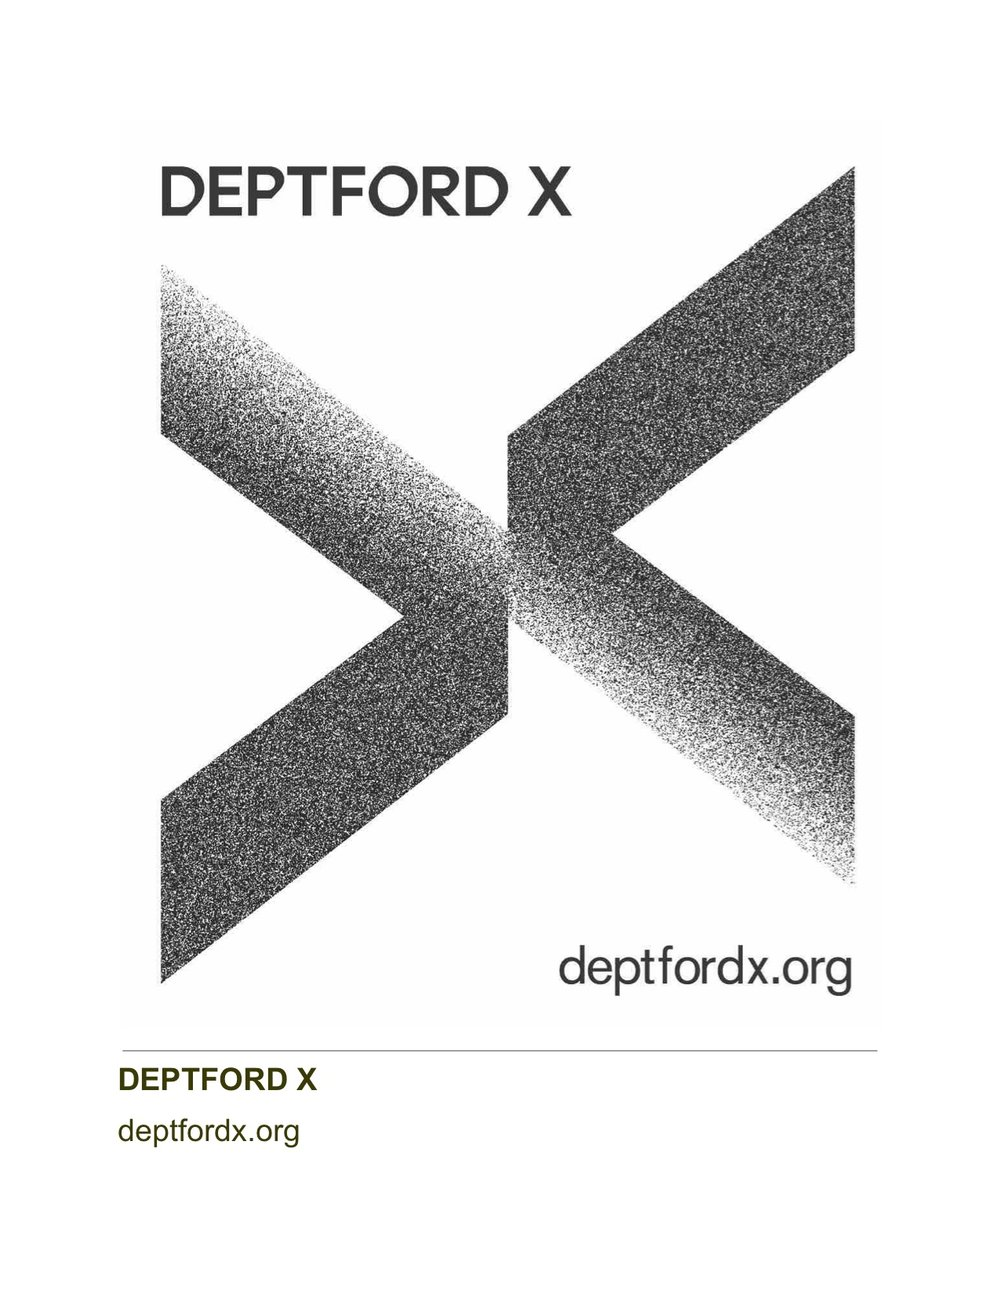 deptfordx.org.jpg